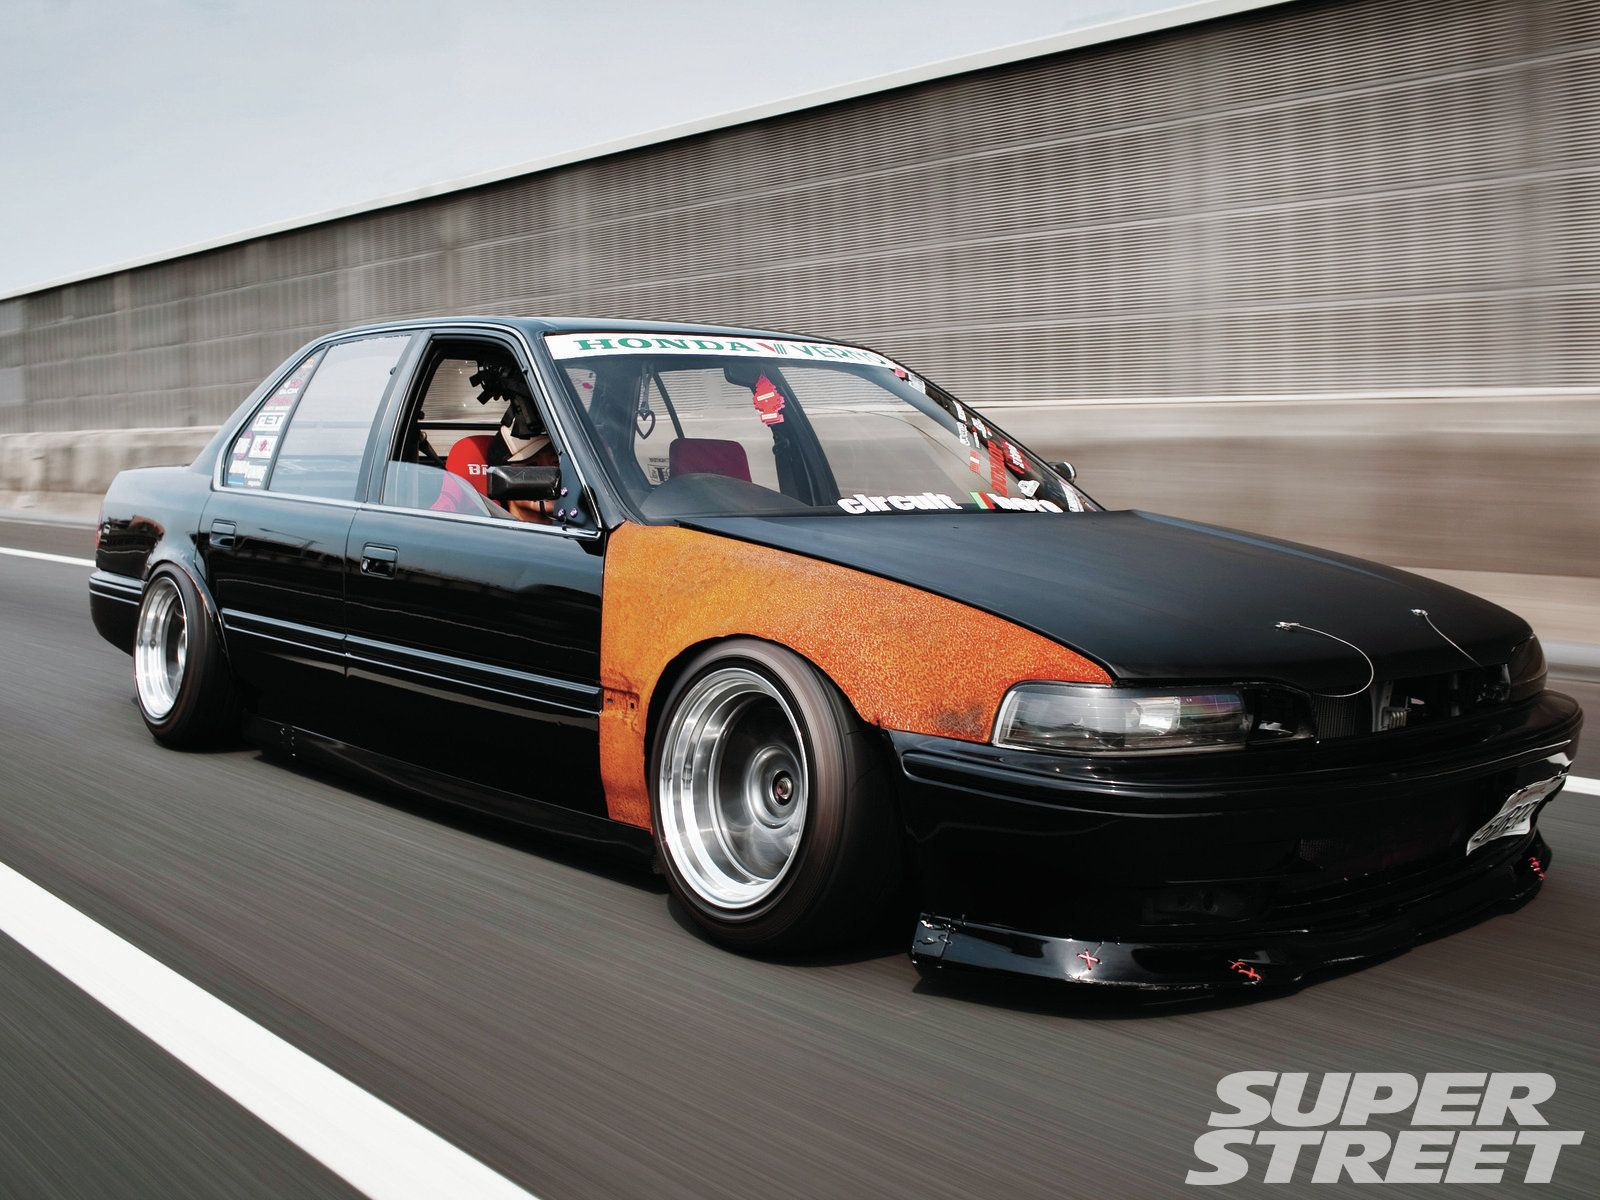 All Tuning Cars Nz Honda Accord Cb7